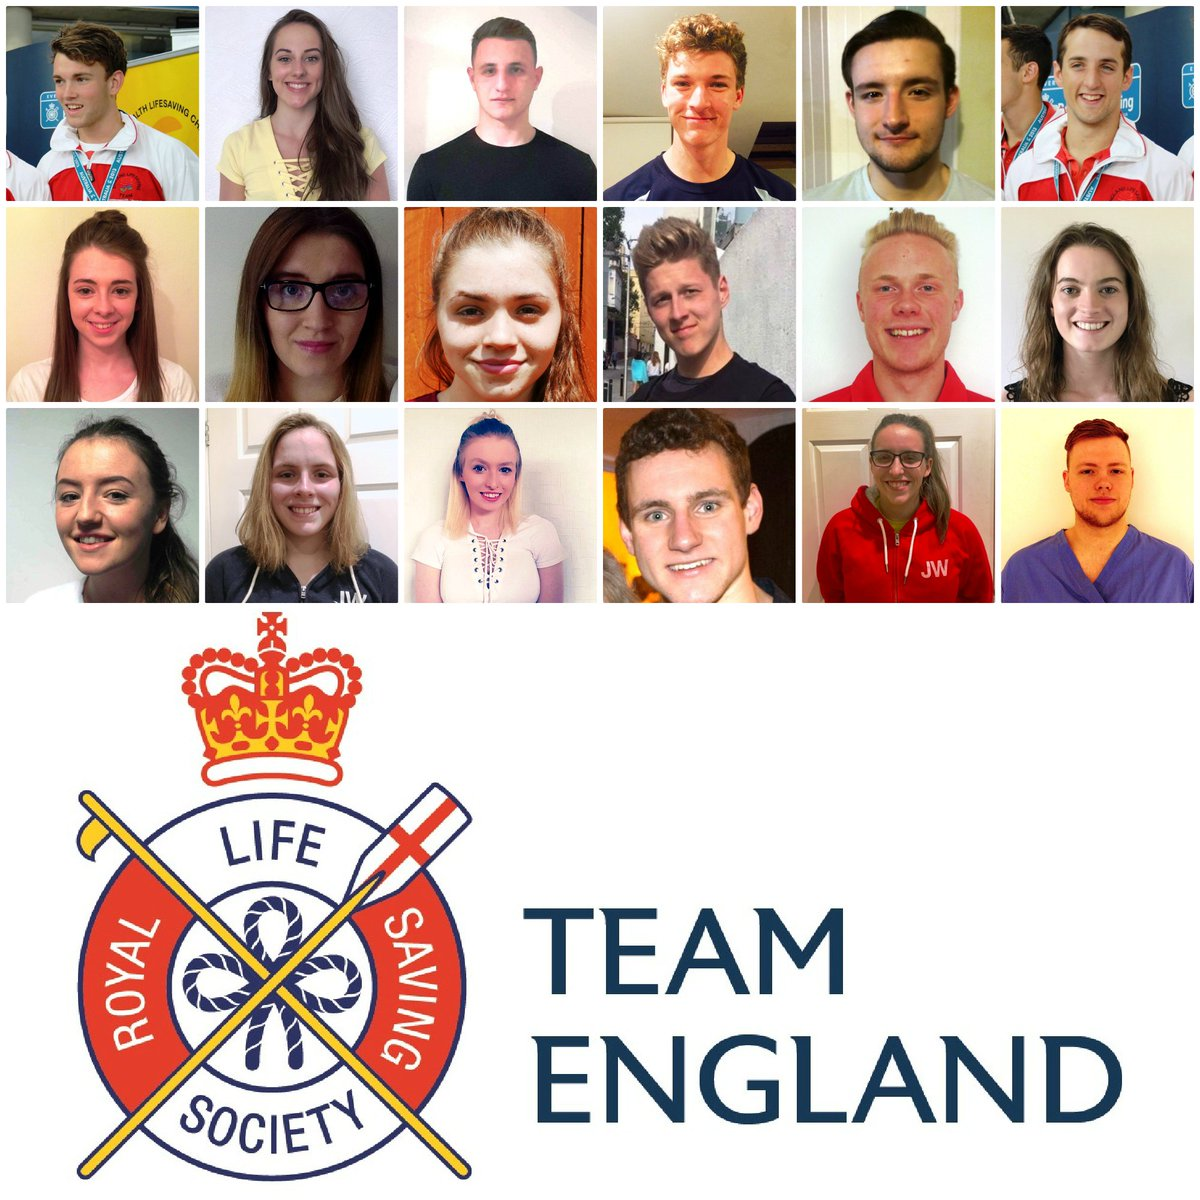 In 22 days' time, RLSS UK Team England will be starting day 1 of the competition at the Commonwealth Championships!